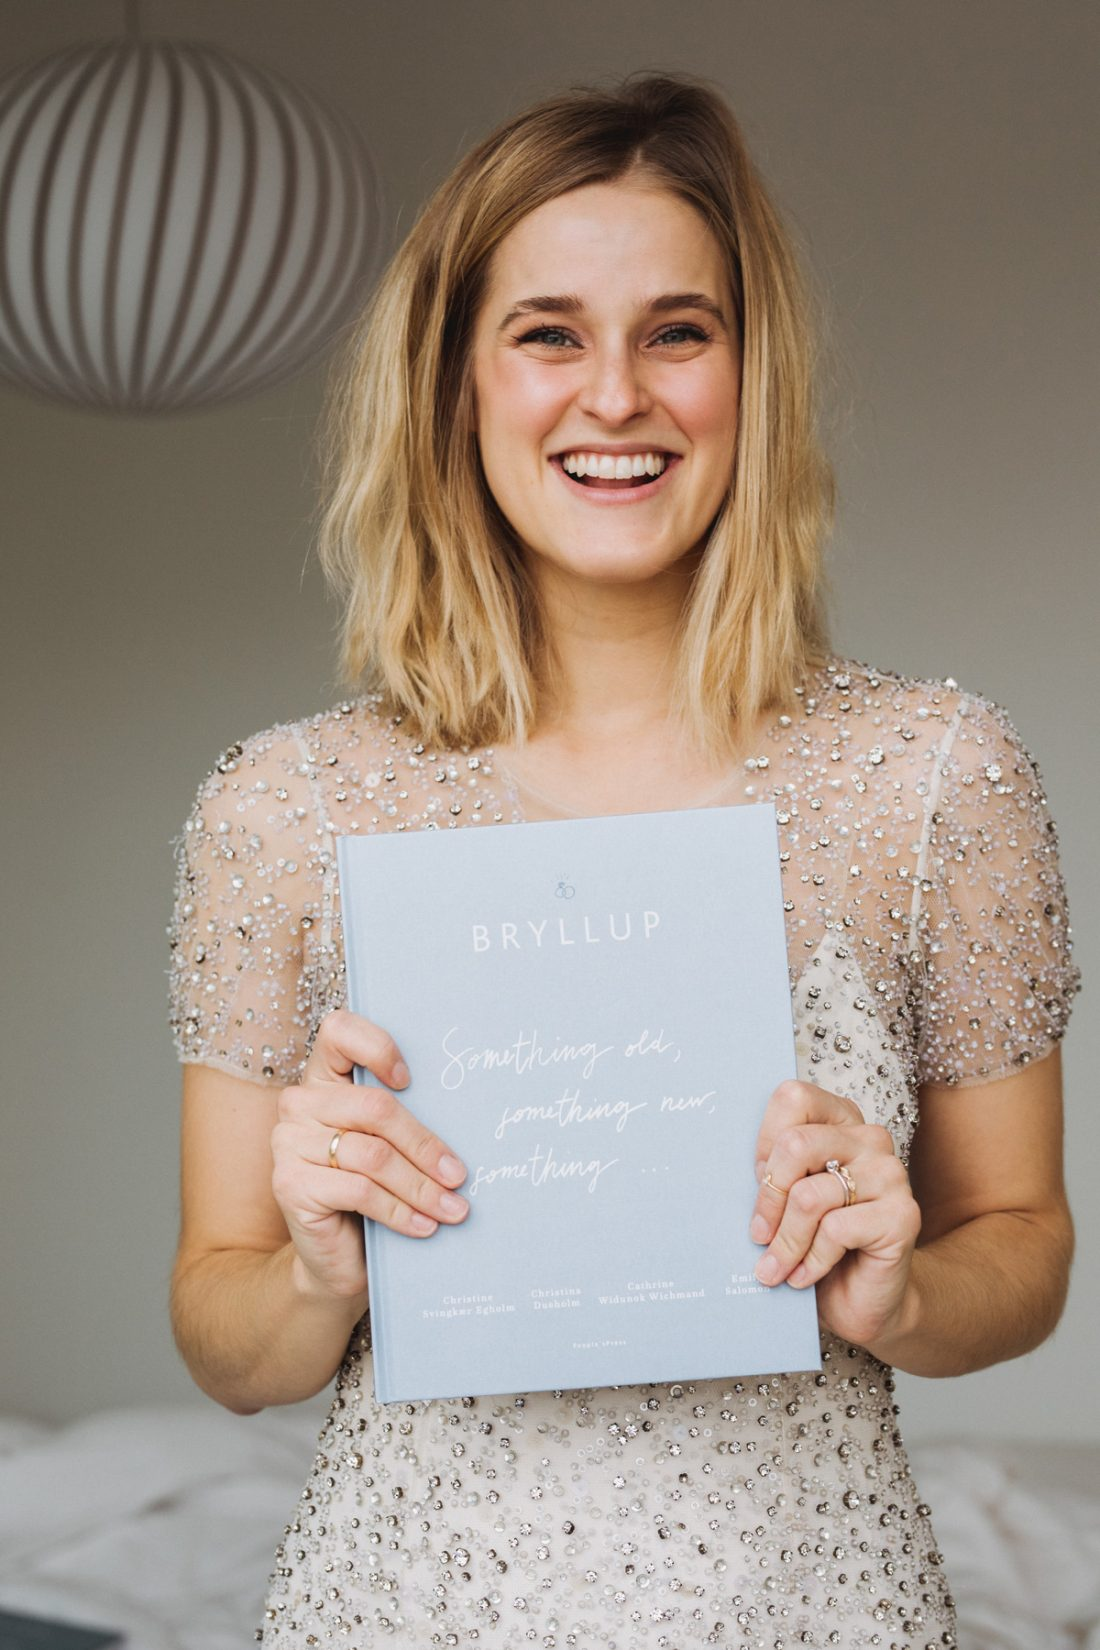 Bryllup the book, Bryllupsbog, People's press, Cathrine Widunok Wichmand, Rockpaperdresses, Cathrine Widunok Wichmand